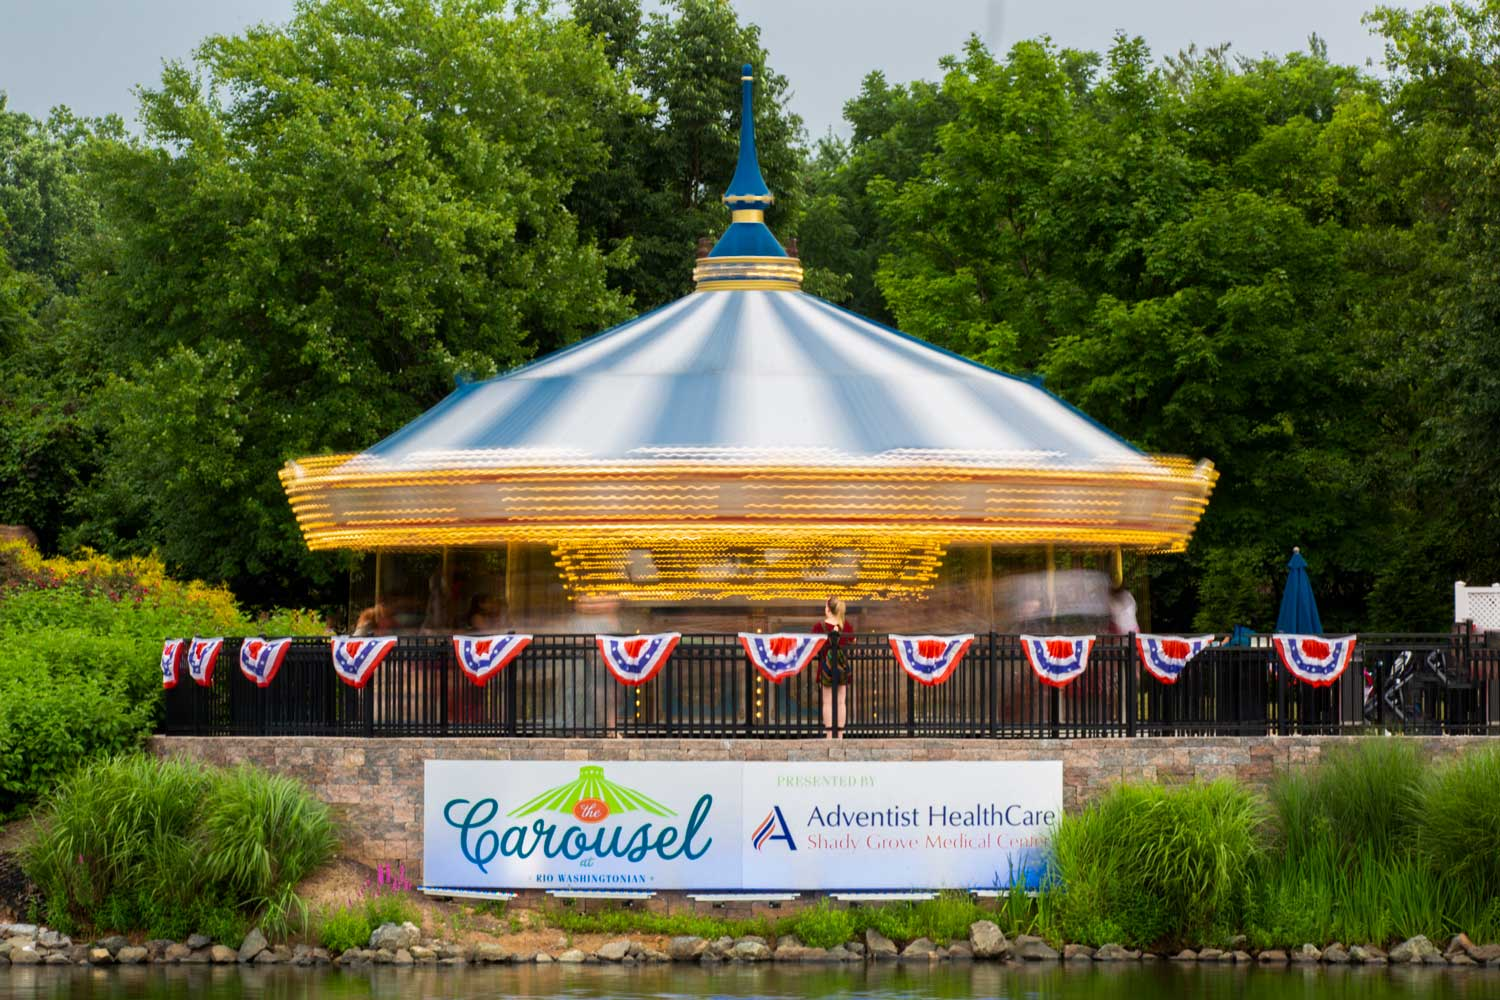 The carousel at RIO is 5 minutes from Governor Square Apartments